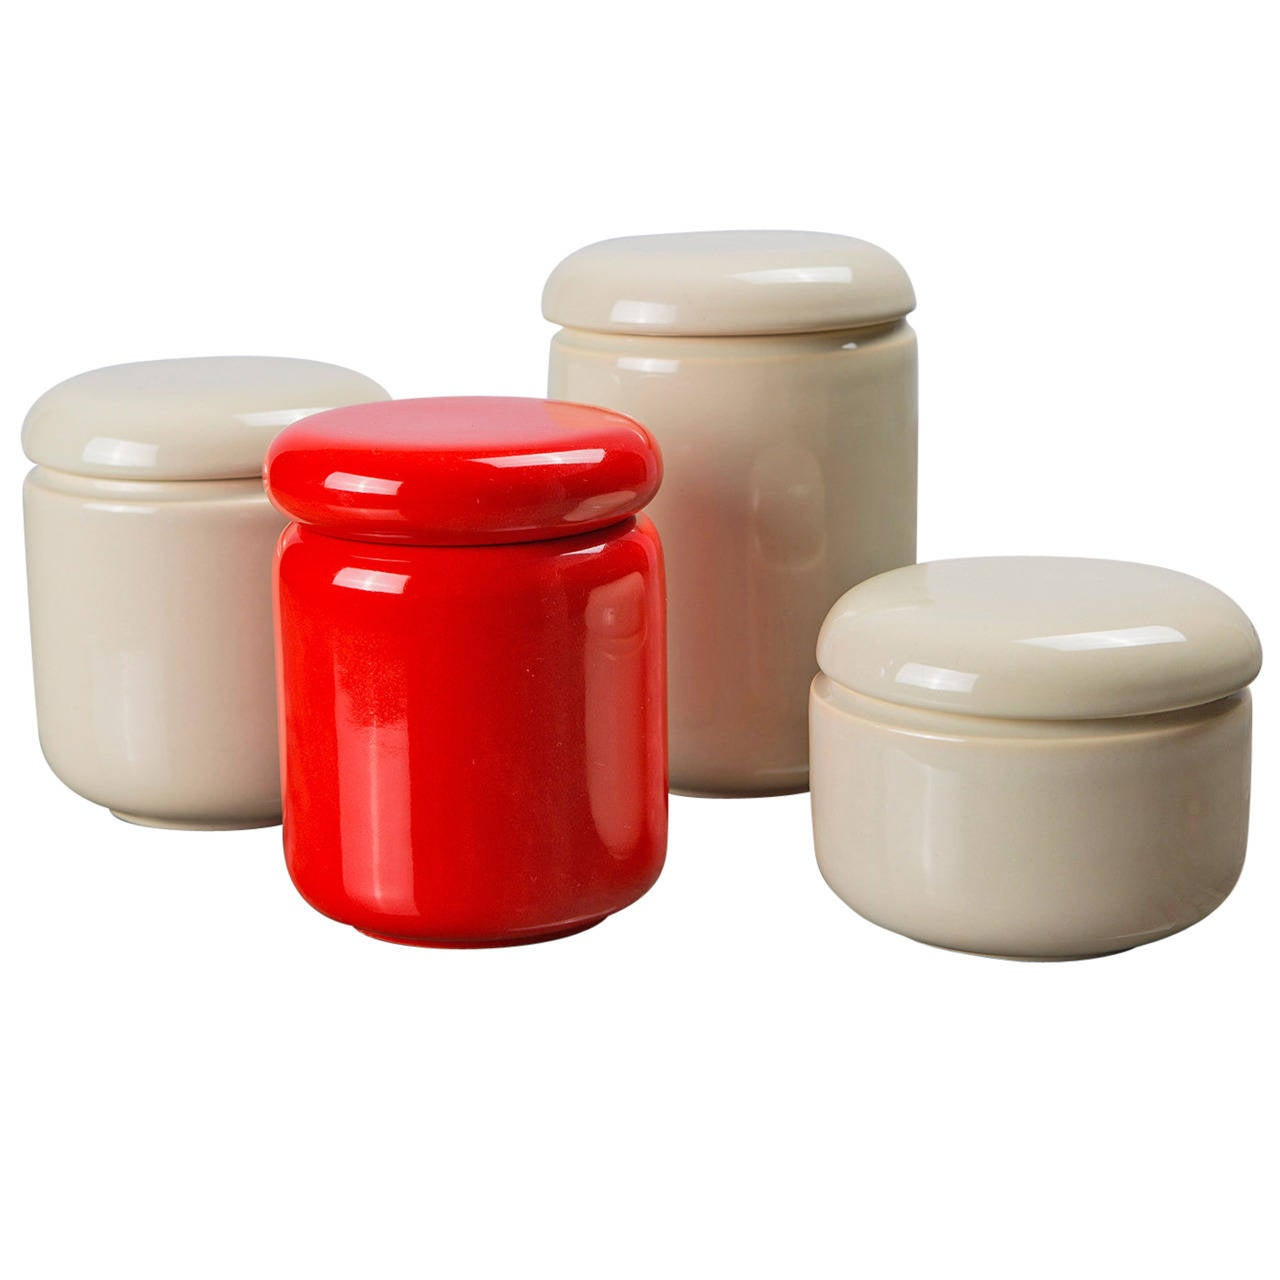 Set of Four Glazed Ceramic Boxes by Pino Spagnolo for Sicart